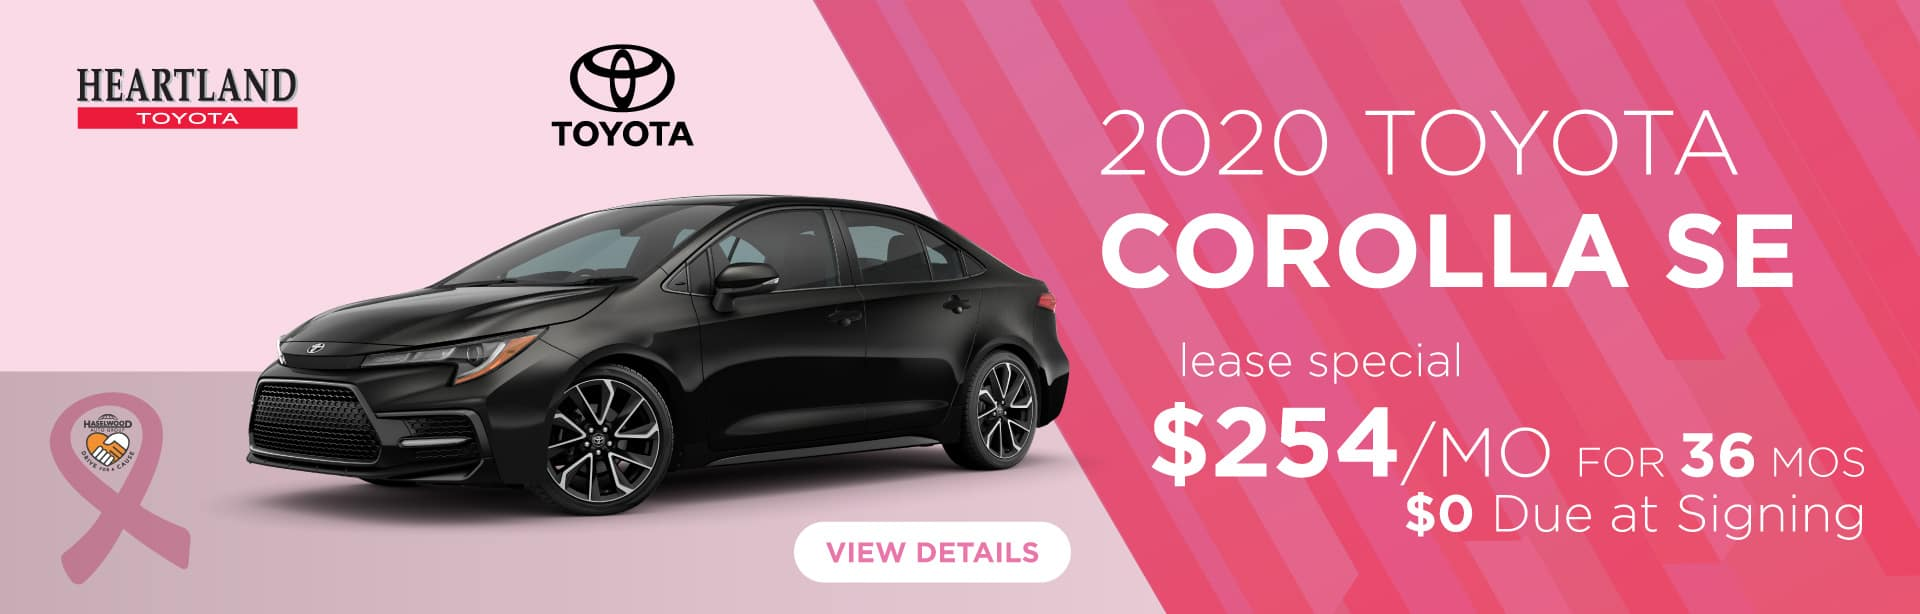 2020 Toyota Corolla SE  $254/mo for 36 months * $0 Due at Signing    *Offer valid on 2020 Toyota Corolla SE. $254 per month for 36 months. Lease with $0 due at signing; includes a $695 acquisition fee. Valid on VIN: 5YFS4RCE0LP016993, JTDS4RCE5LJ040338, JTDS4RCEXLJ036639. MSRP $22,880. Lease is through TFS. Subject to credit approval. No Security deposit required. Excludes taxes, title, and fees. 36 monthly payments required. Not all lessees will qualify for lowest payment through participating lender. Residency restrictions apply. Lessee responsible for mileage over 10,000 miles per year at $0.15/mile per year. Option to purchase at lease end. A negotiable dealer documentary service fee of up to $150 may be added to the sale price or capitalized cost. Offer expires 11/4/2019.